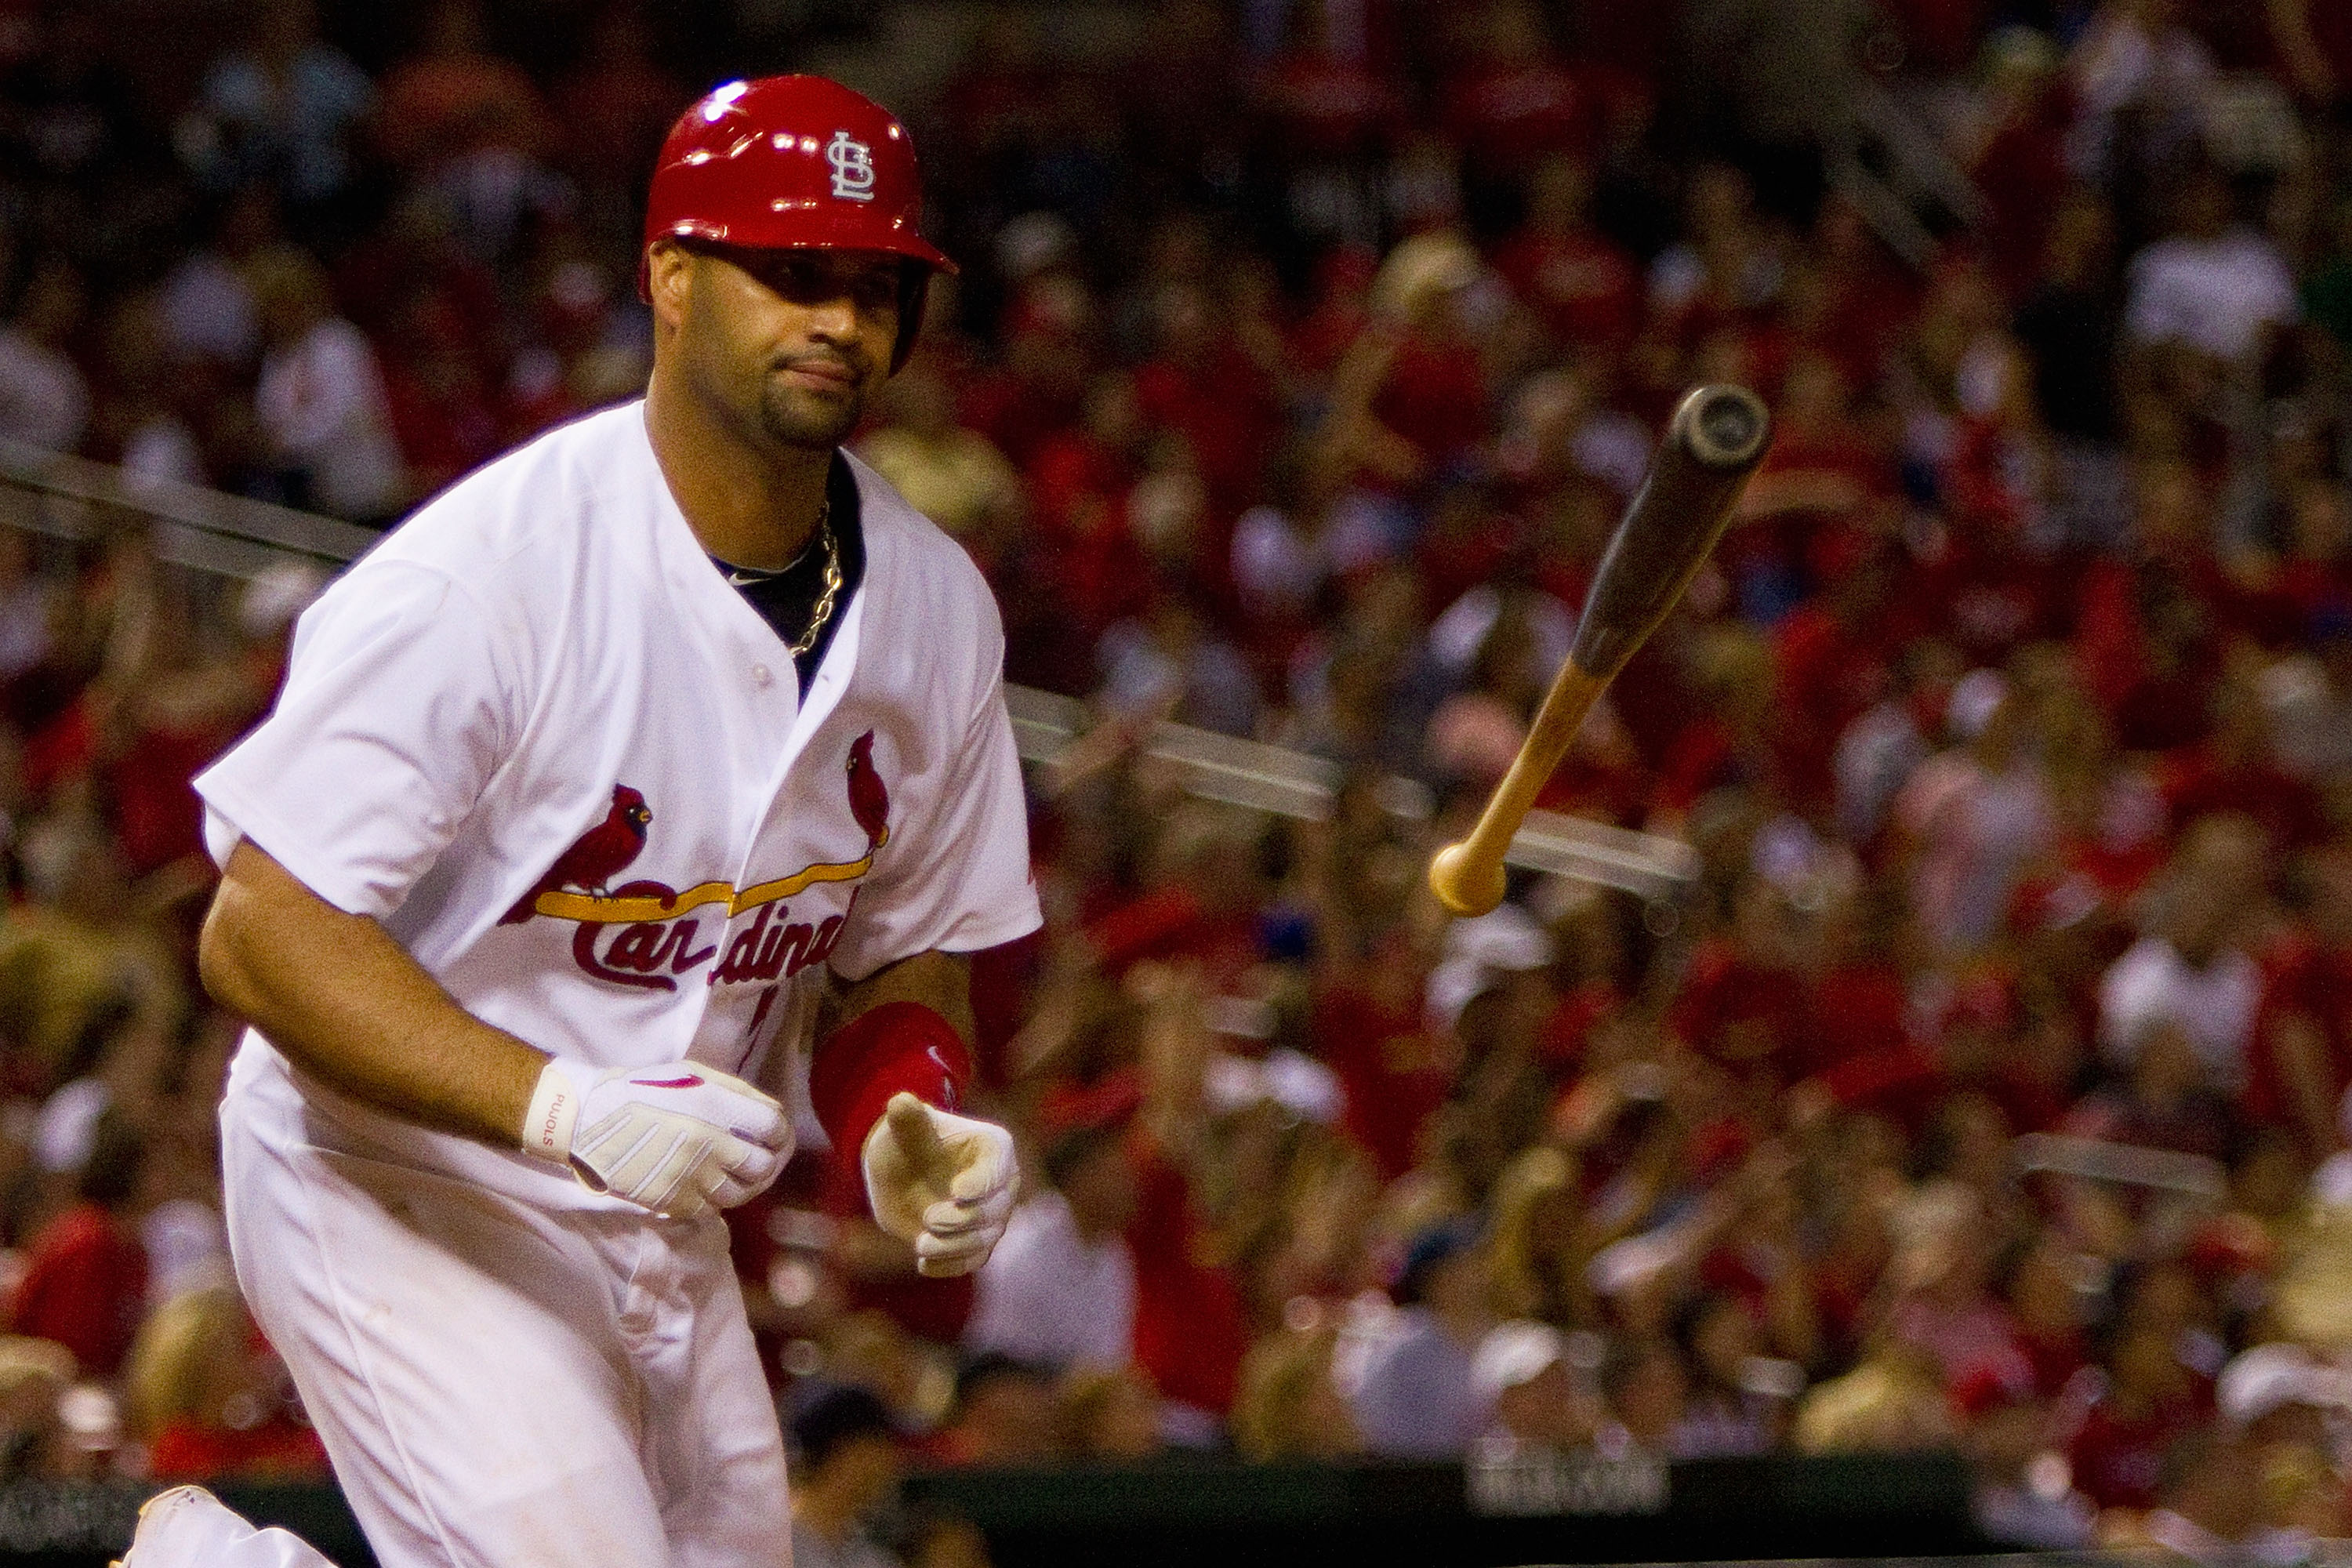 ST. LOUIS - JUNE 16: Albert Pujols #5 of the St. Louis Cardinals reacts to popping out against the Seattle Mariners at Busch Stadium on June 16, 2010 in St. Louis, Missouri.  (Photo by Dilip Vishwanat/Getty Images)